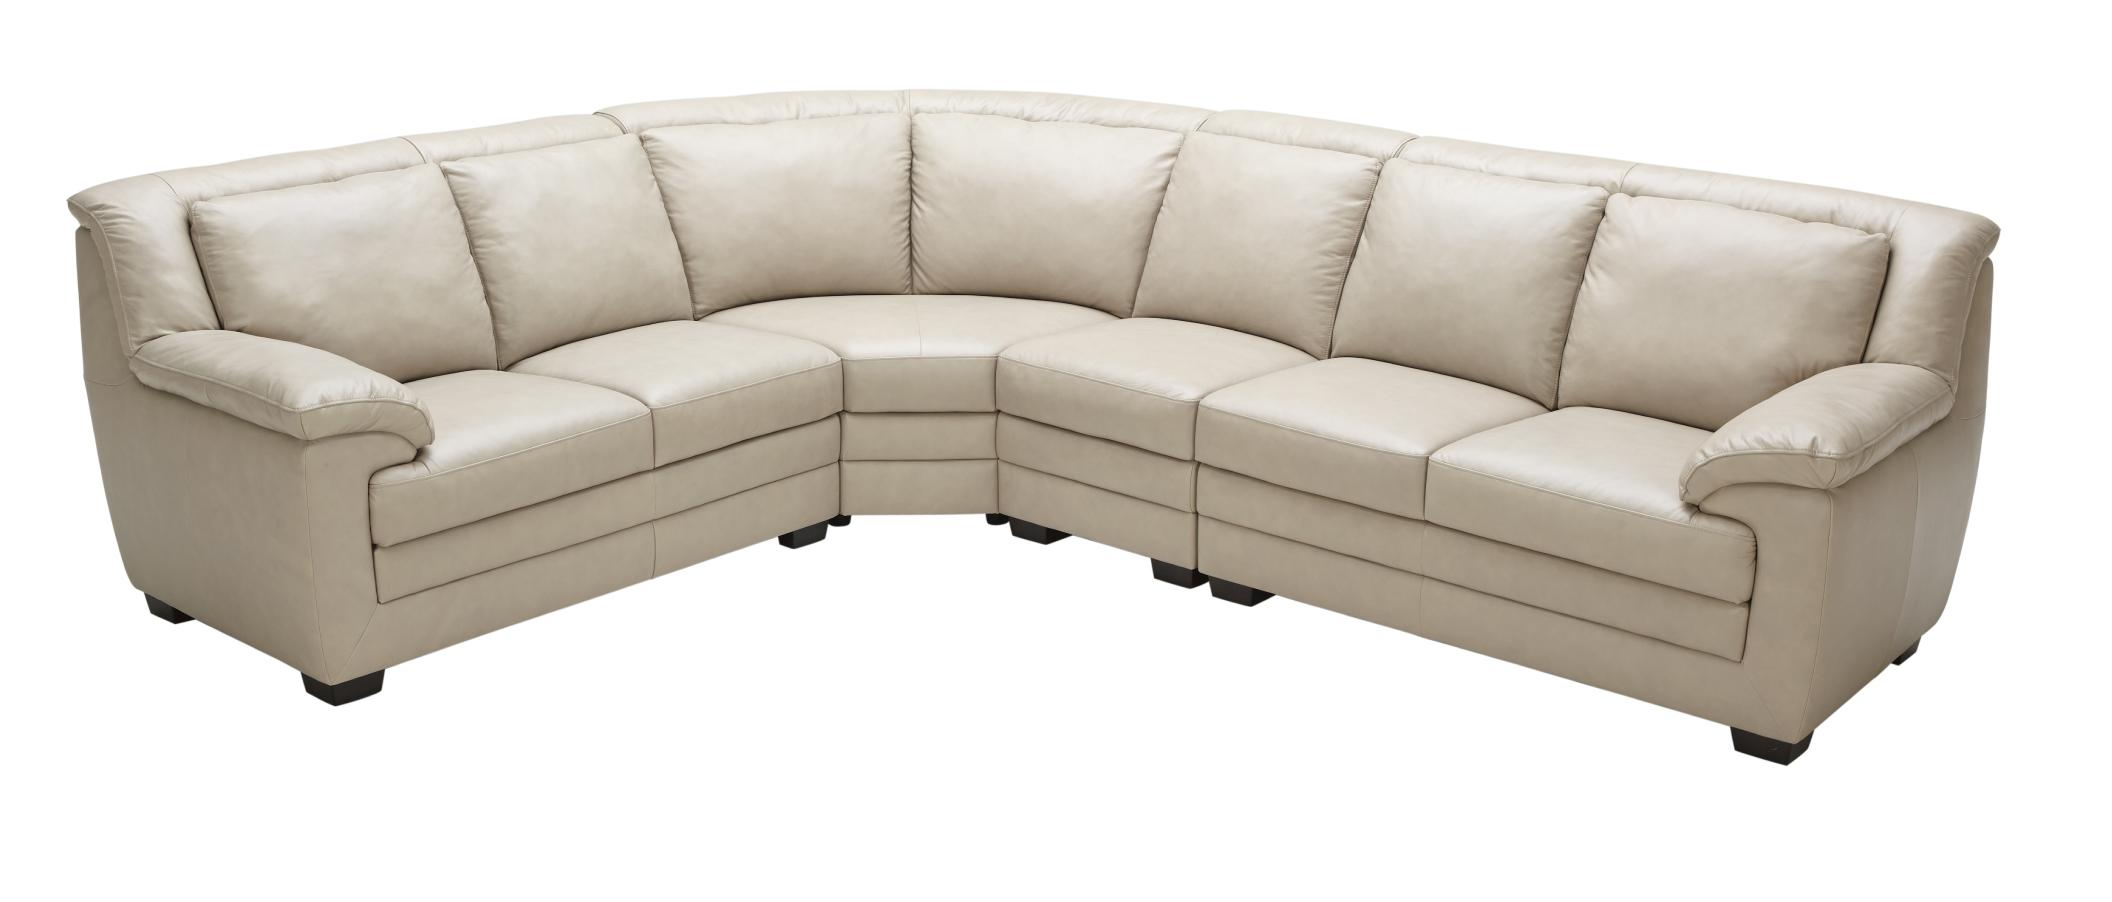 Casual Sectional Sofa